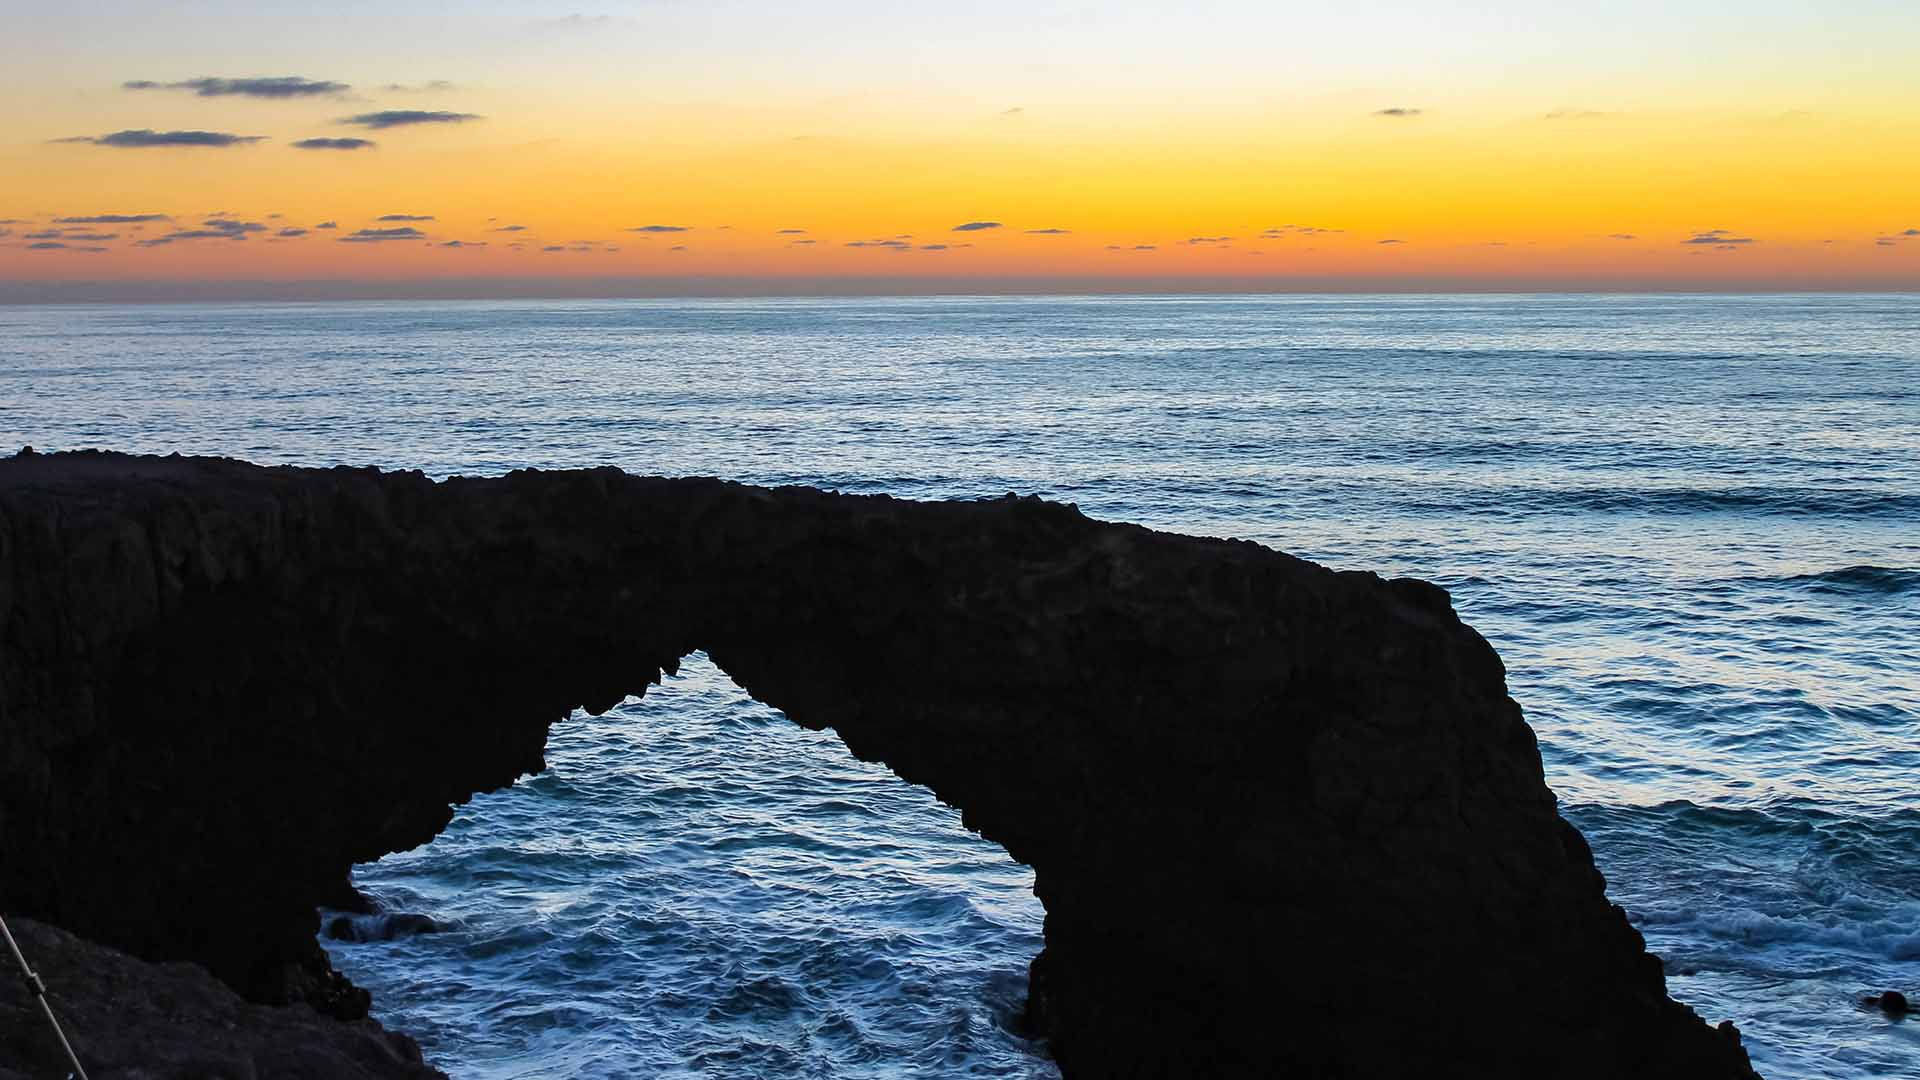 Stunning Sunsets at the Rosarito Beach Arch